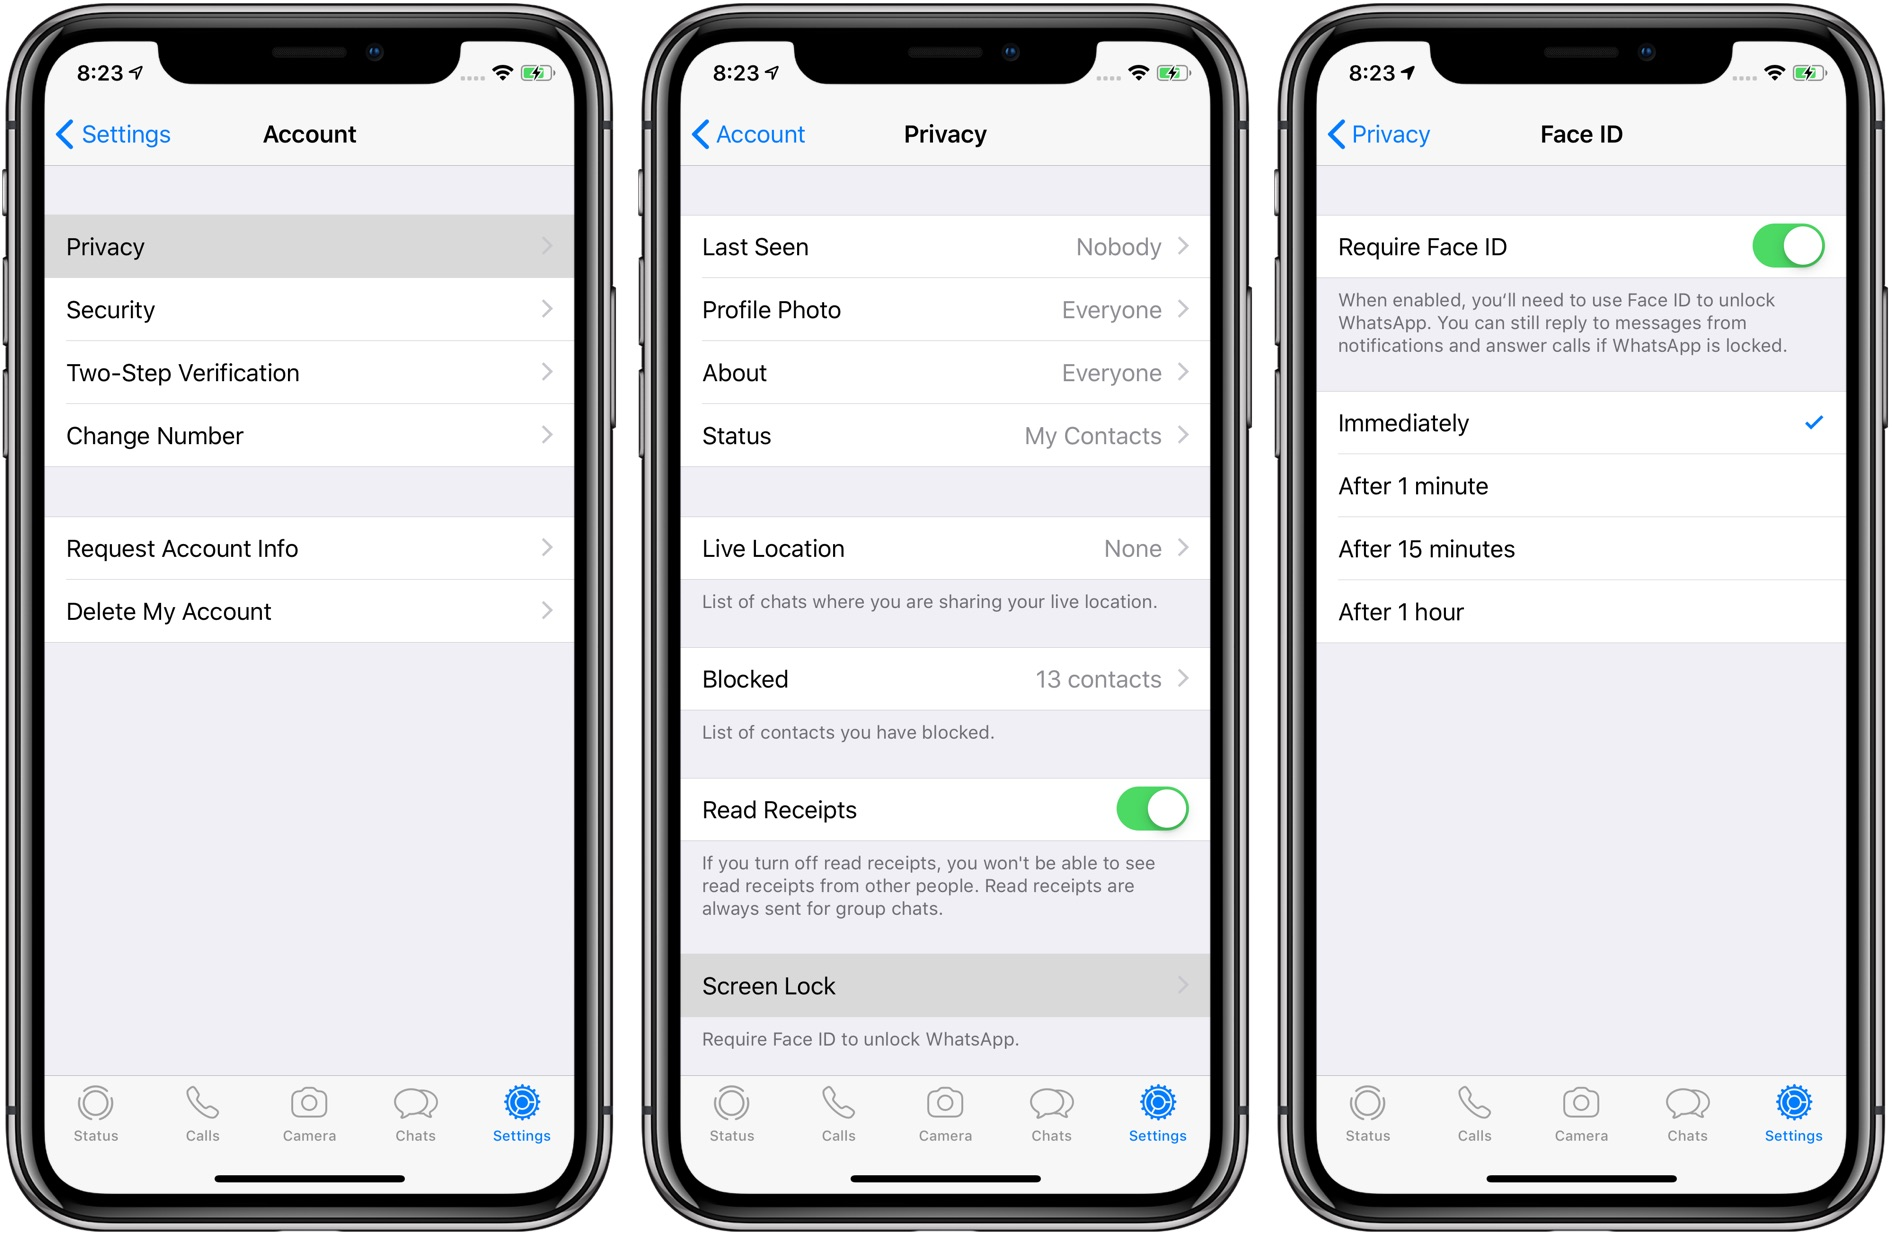 How to require Face ID to protect your private conversations on WhatsApp and unlock the app